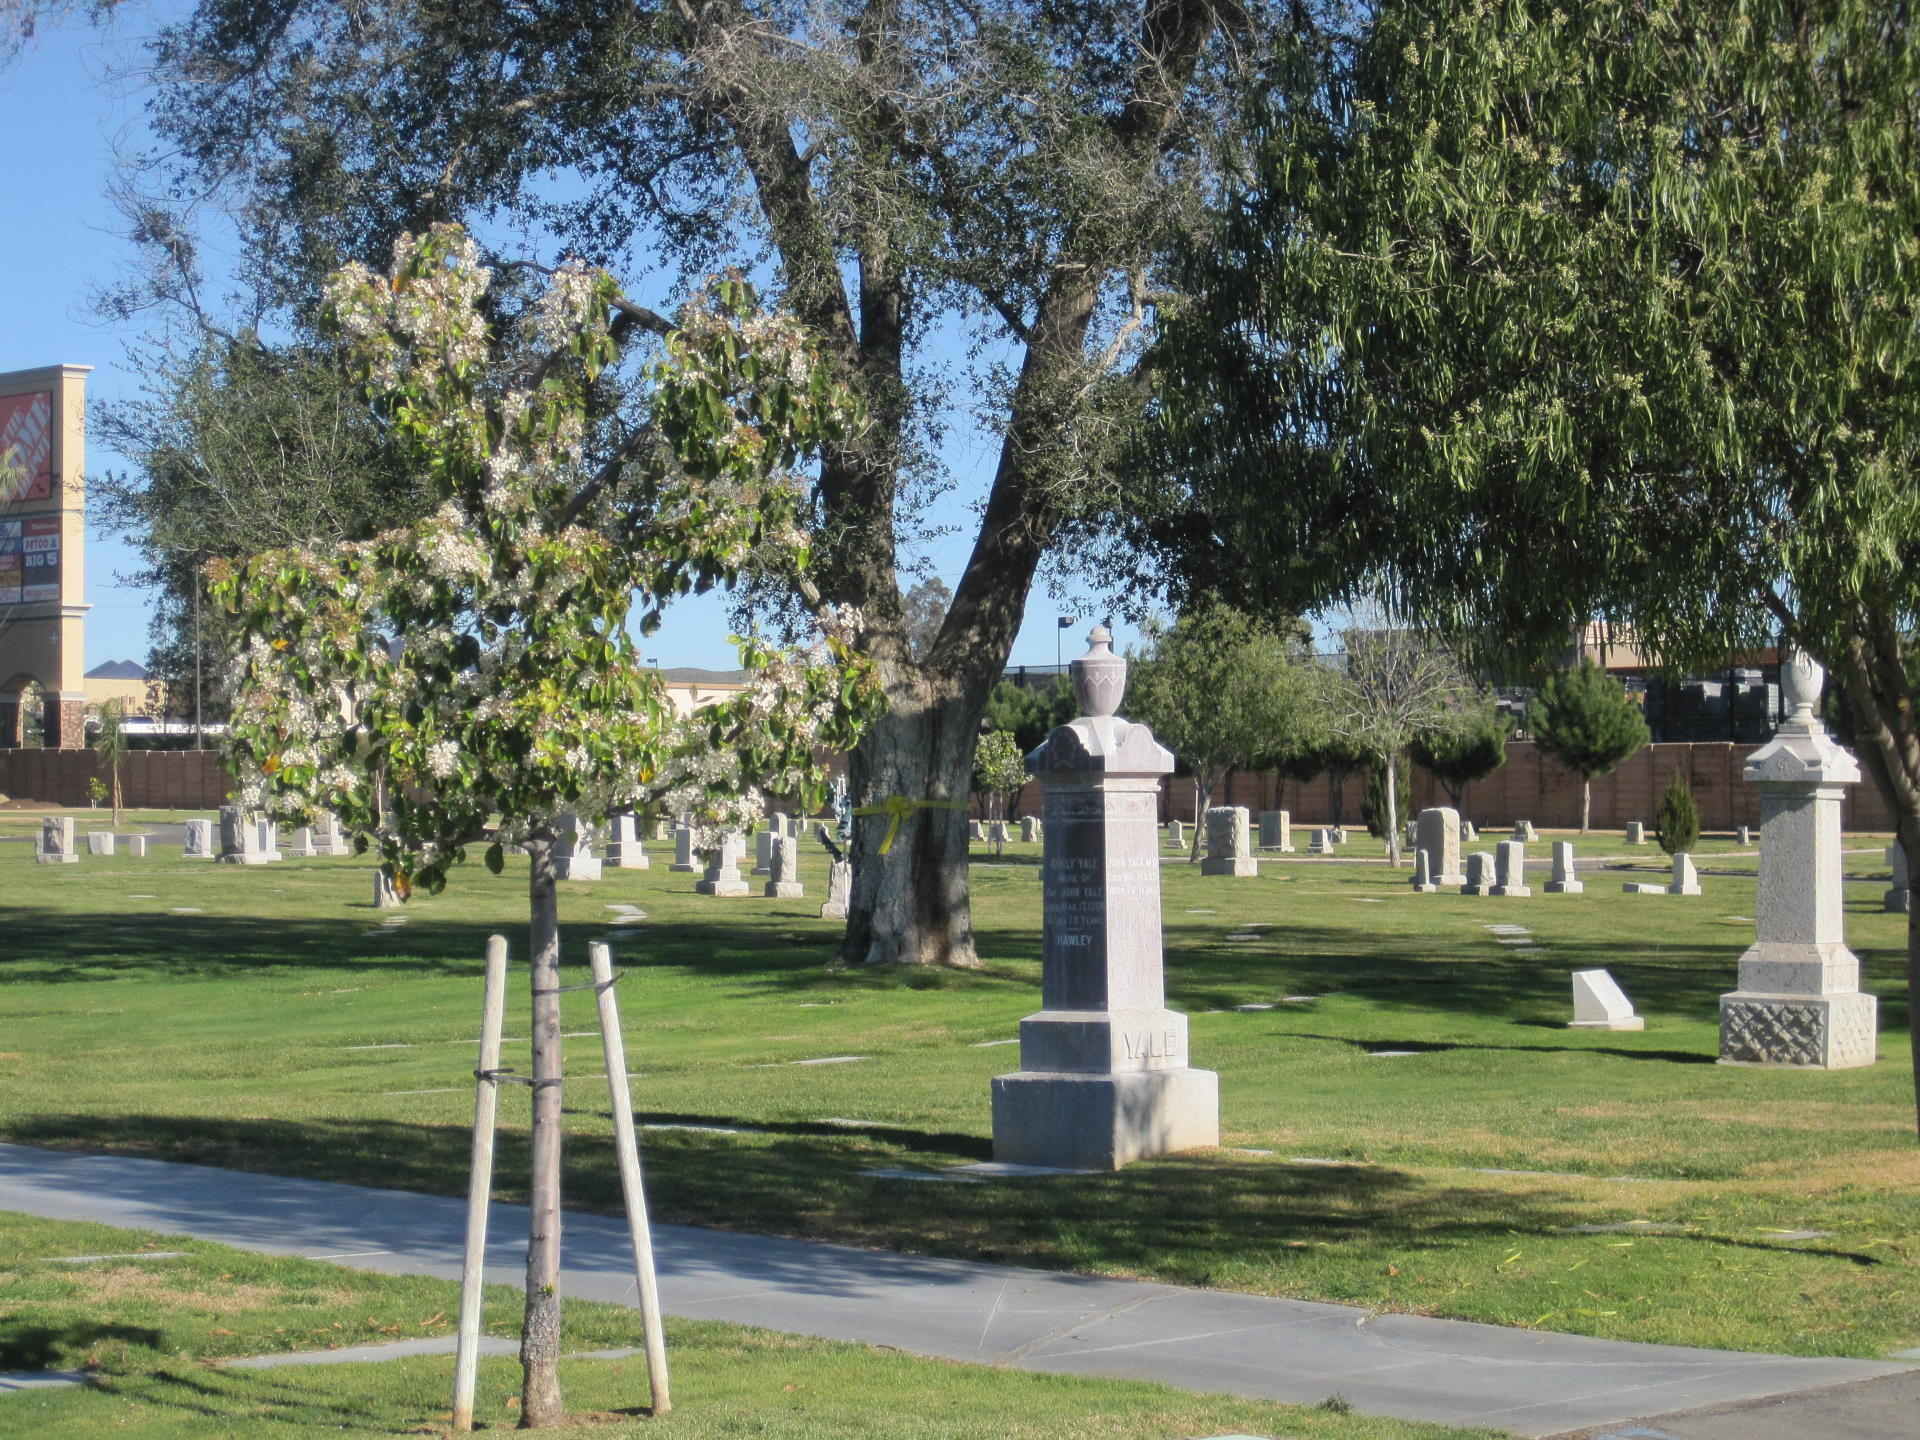 traditional cemetery burial area with tall headstones